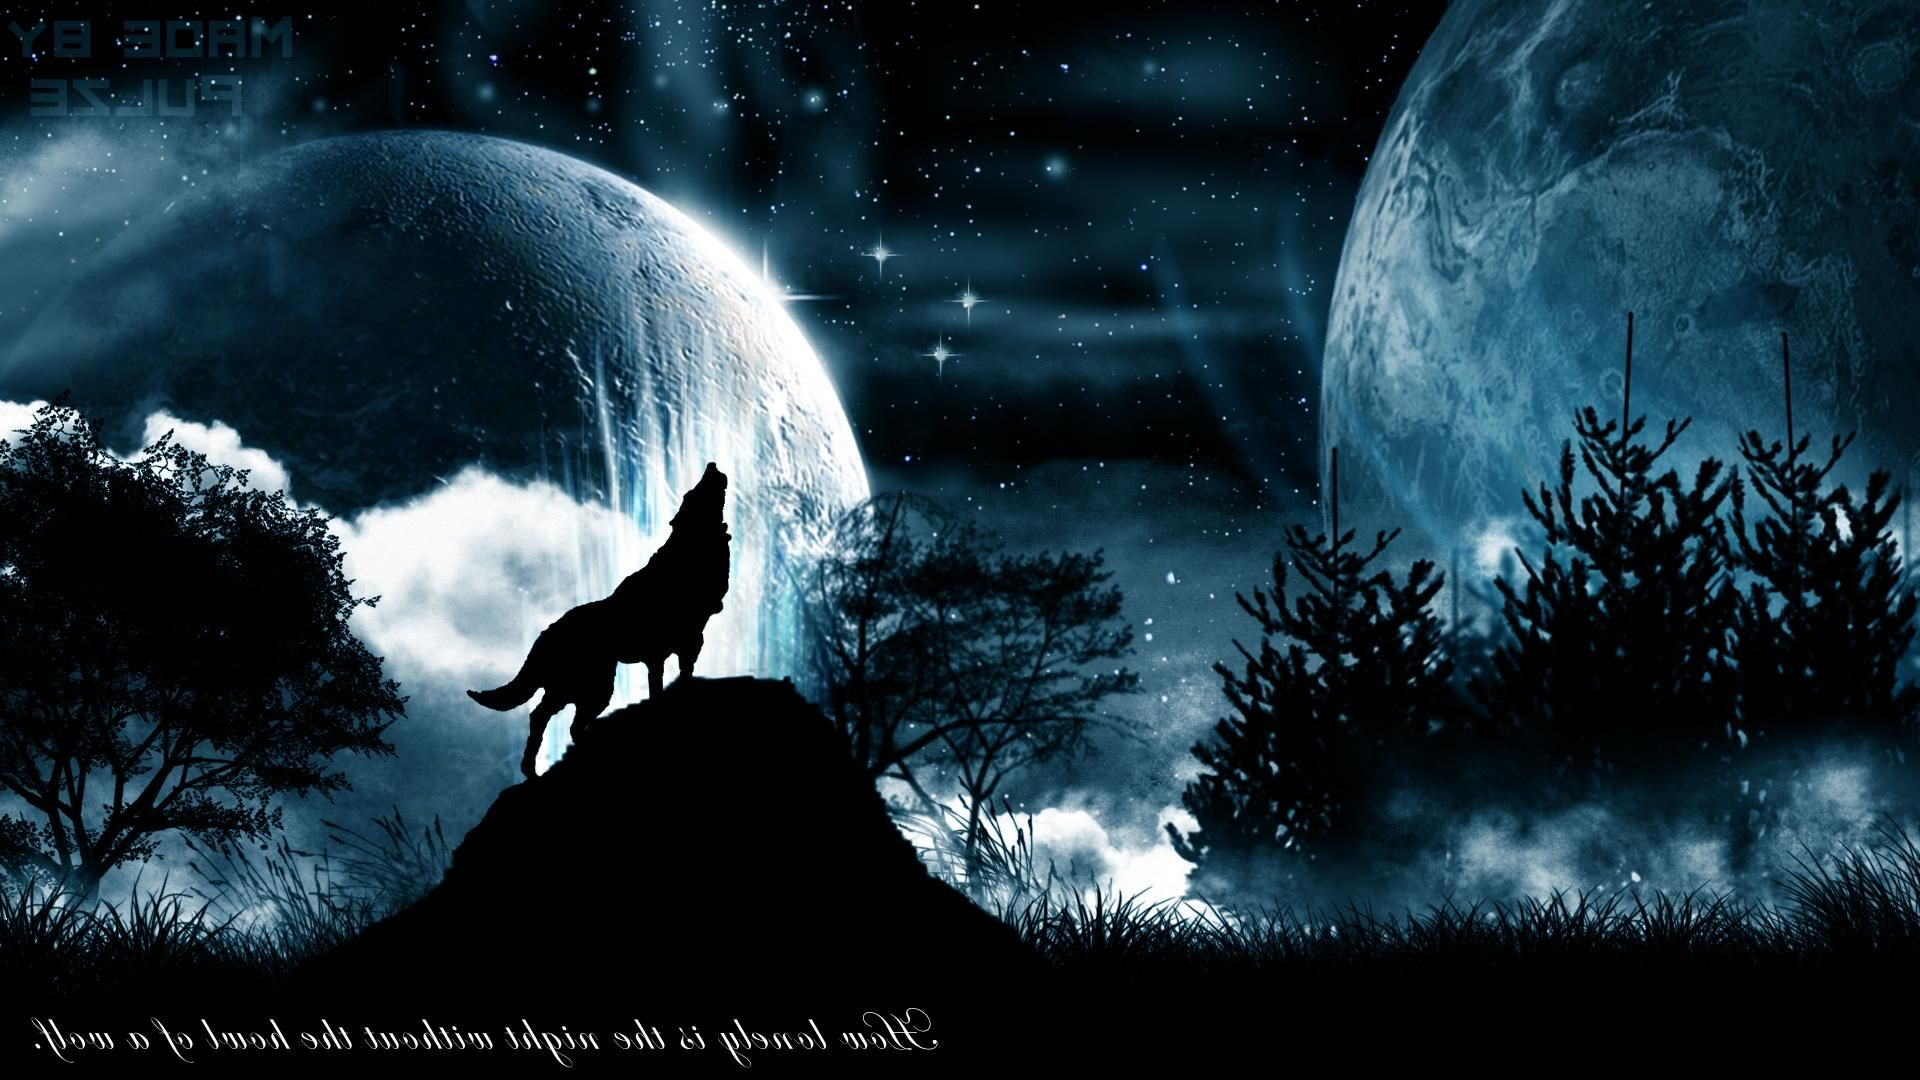 Dark Wolf Quotes - Quotes Like | Book Art | Pinterest ...